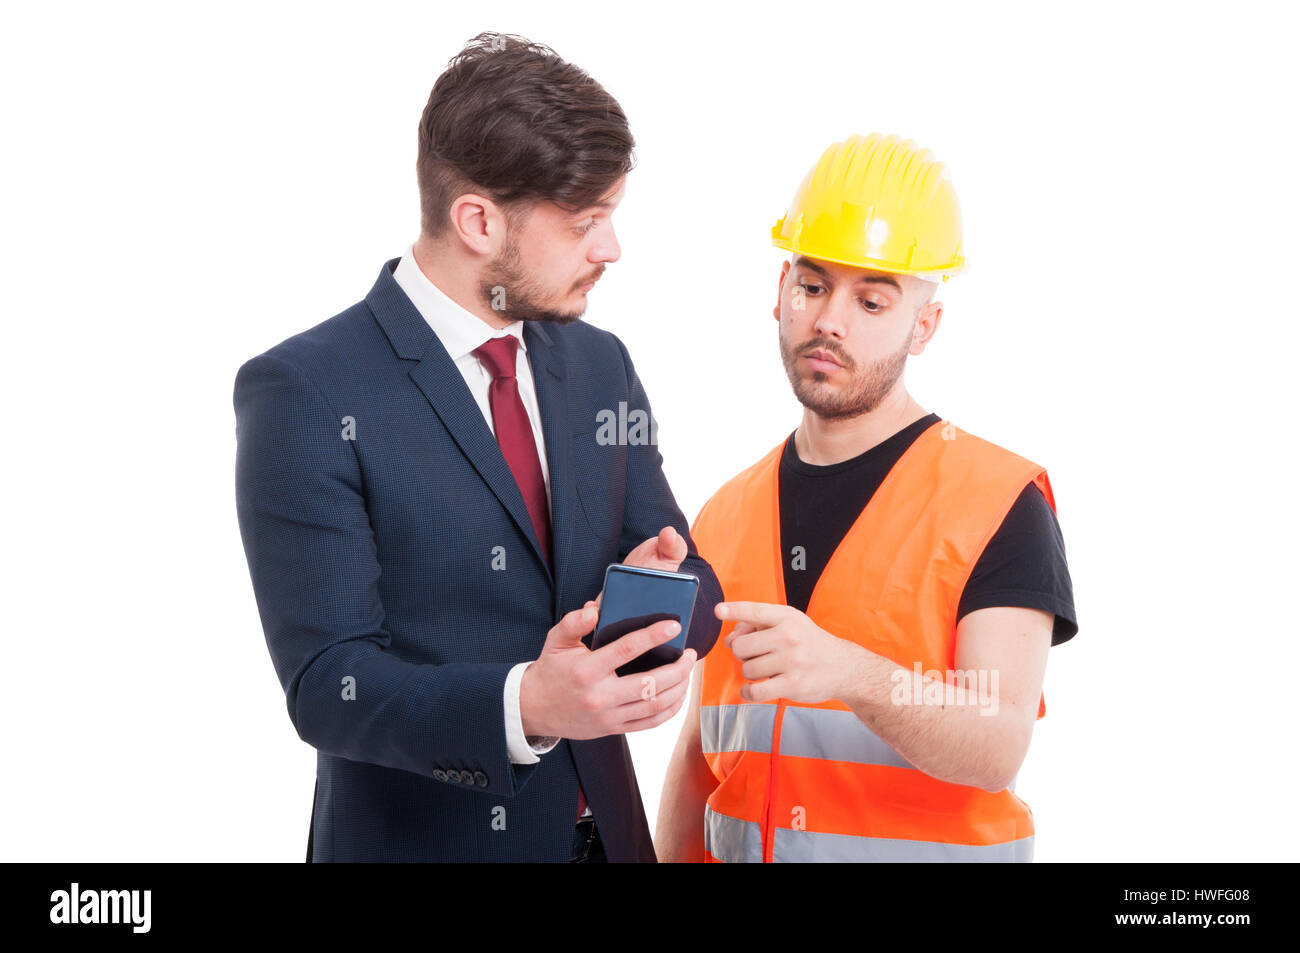 Young director showing something to constructor or engineer on the cellphone isolated on white - Stock Image